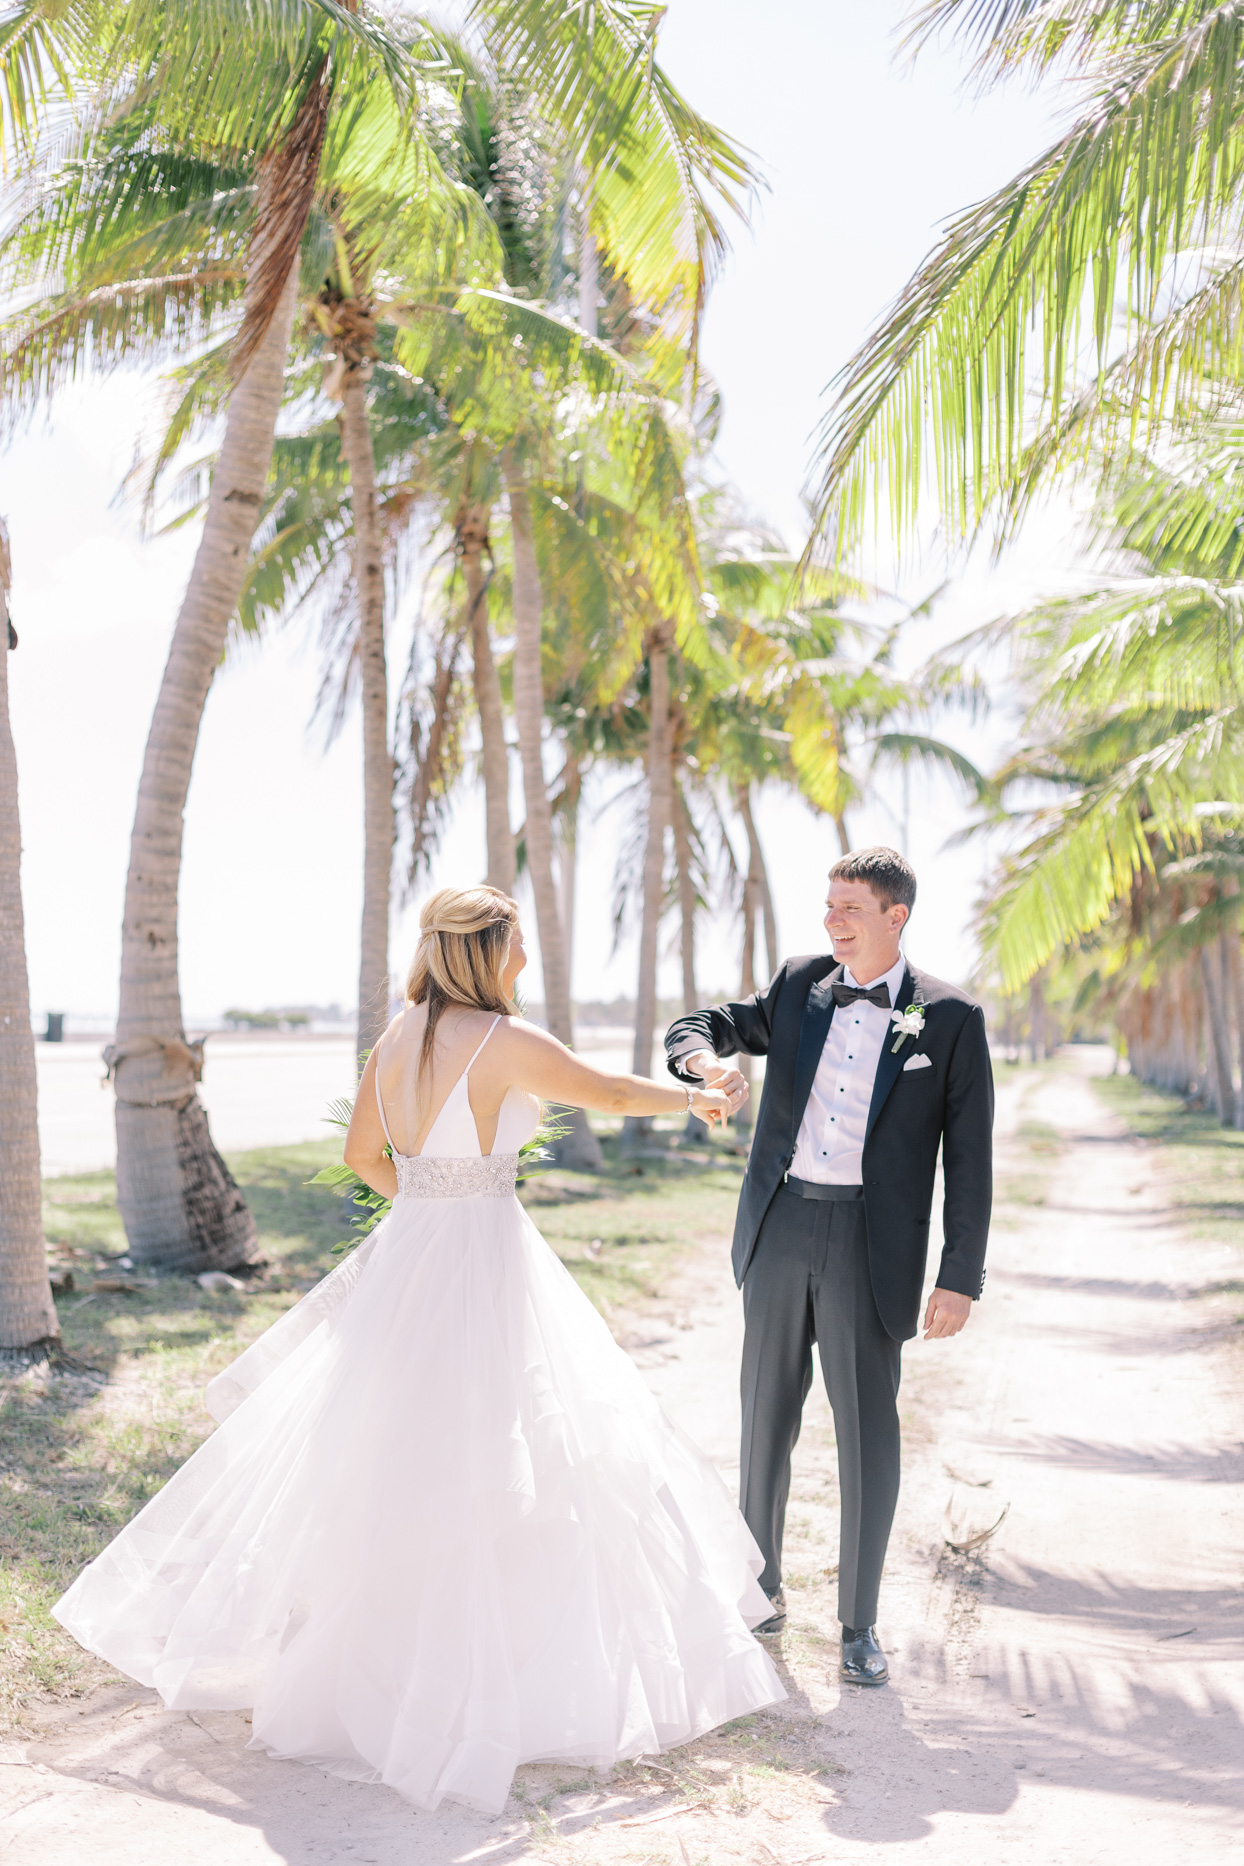 groom spinning bride during first look under palm trees